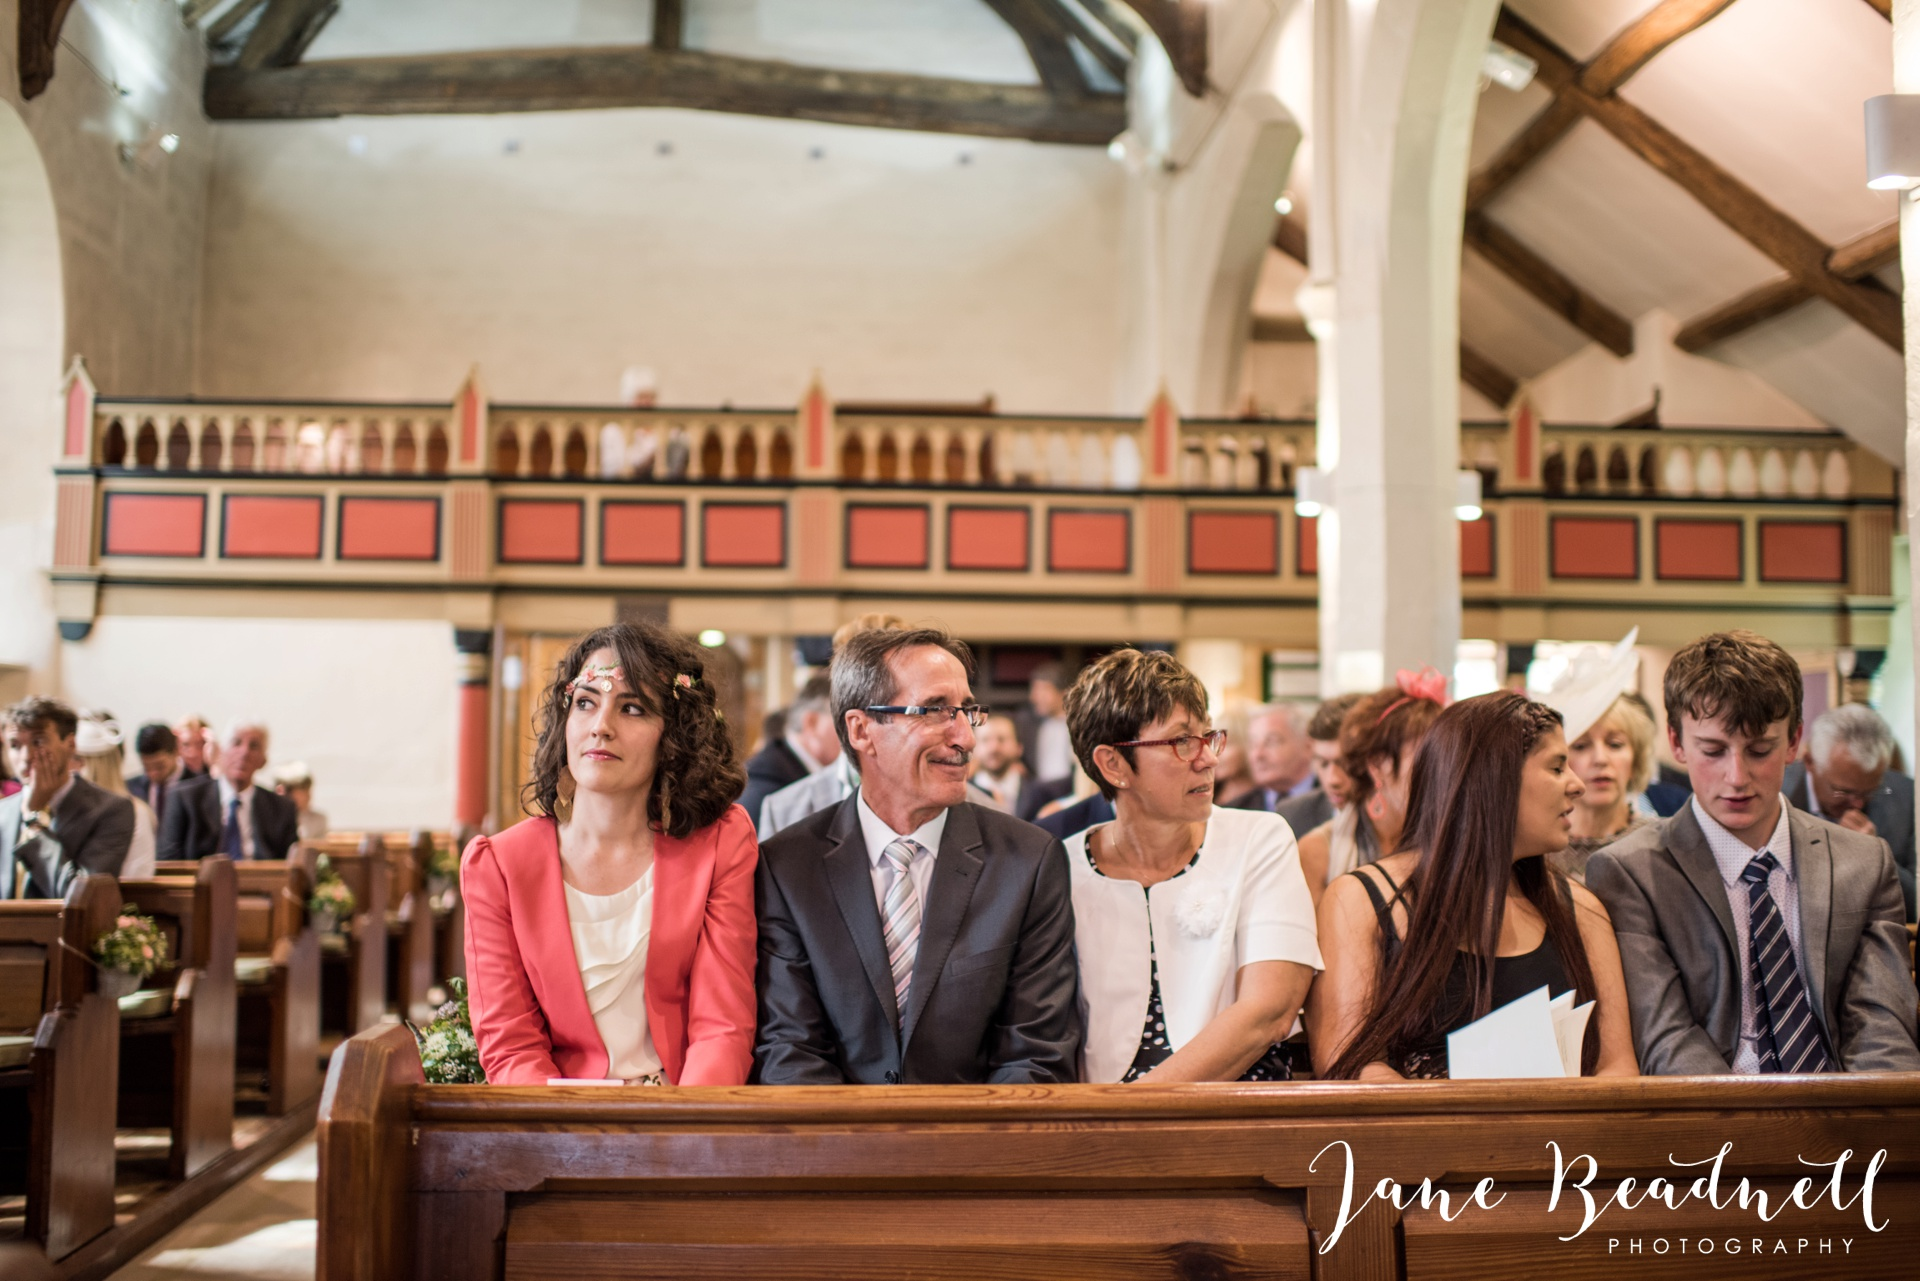 Jane Beadnell fine art wedding photographer Leeds_0027